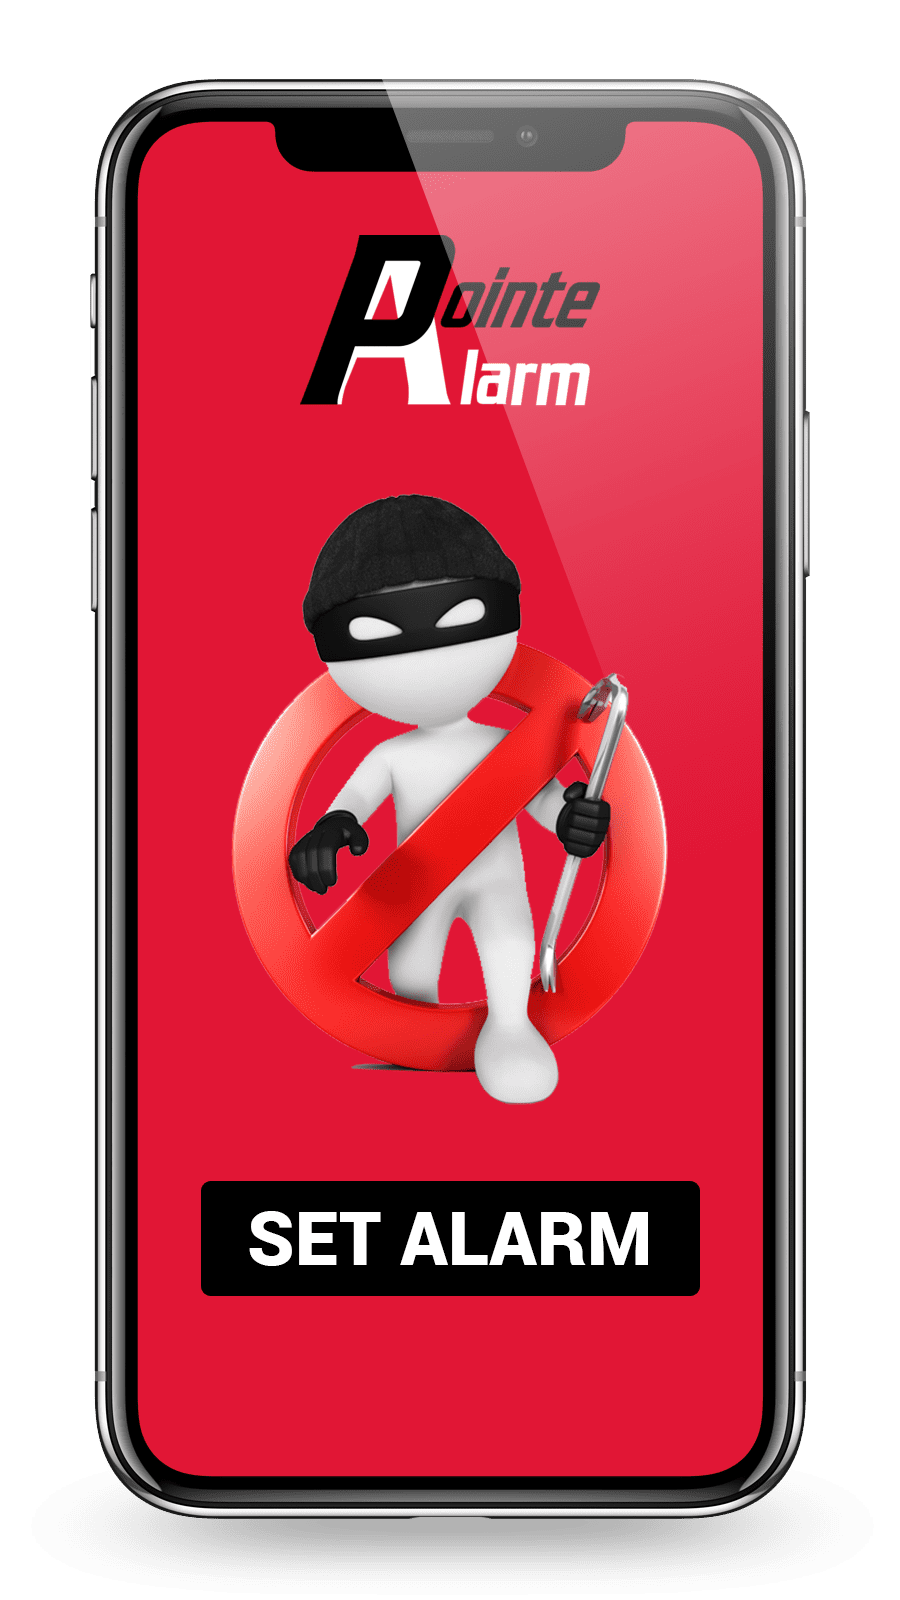 Commerical Alarms & Home Security Systems in Grosse Pointe, MI